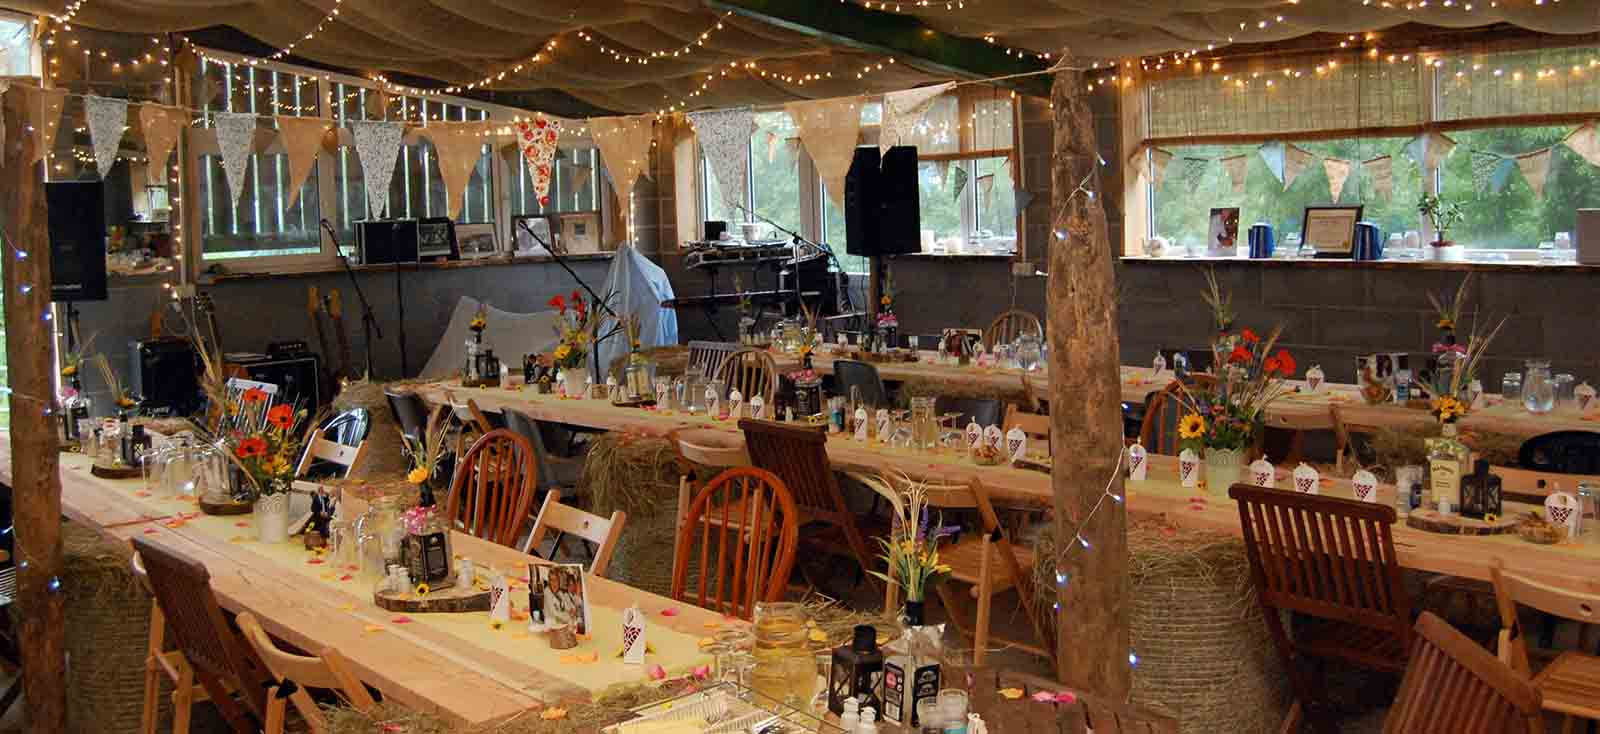 wedding party room with tables laid ready for wedding breakfast